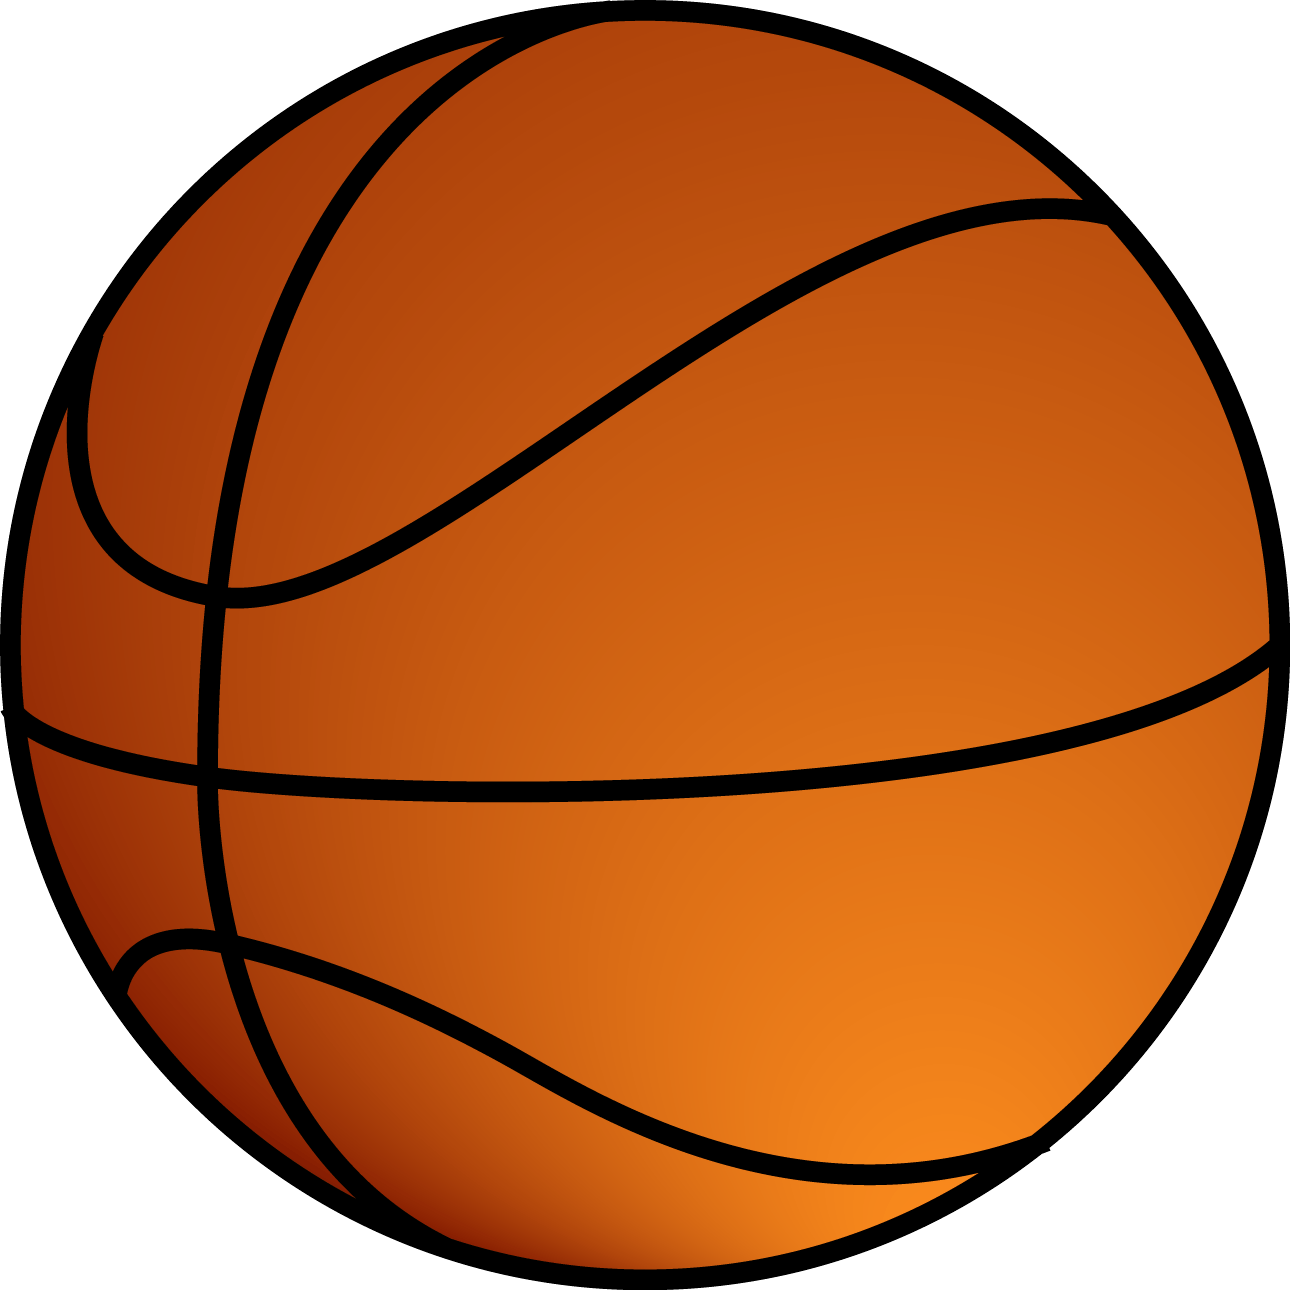 Basketball with flaming wings panther clipart banner download Download Basketball Ball Png Image HQ PNG Image | FreePNGImg banner download